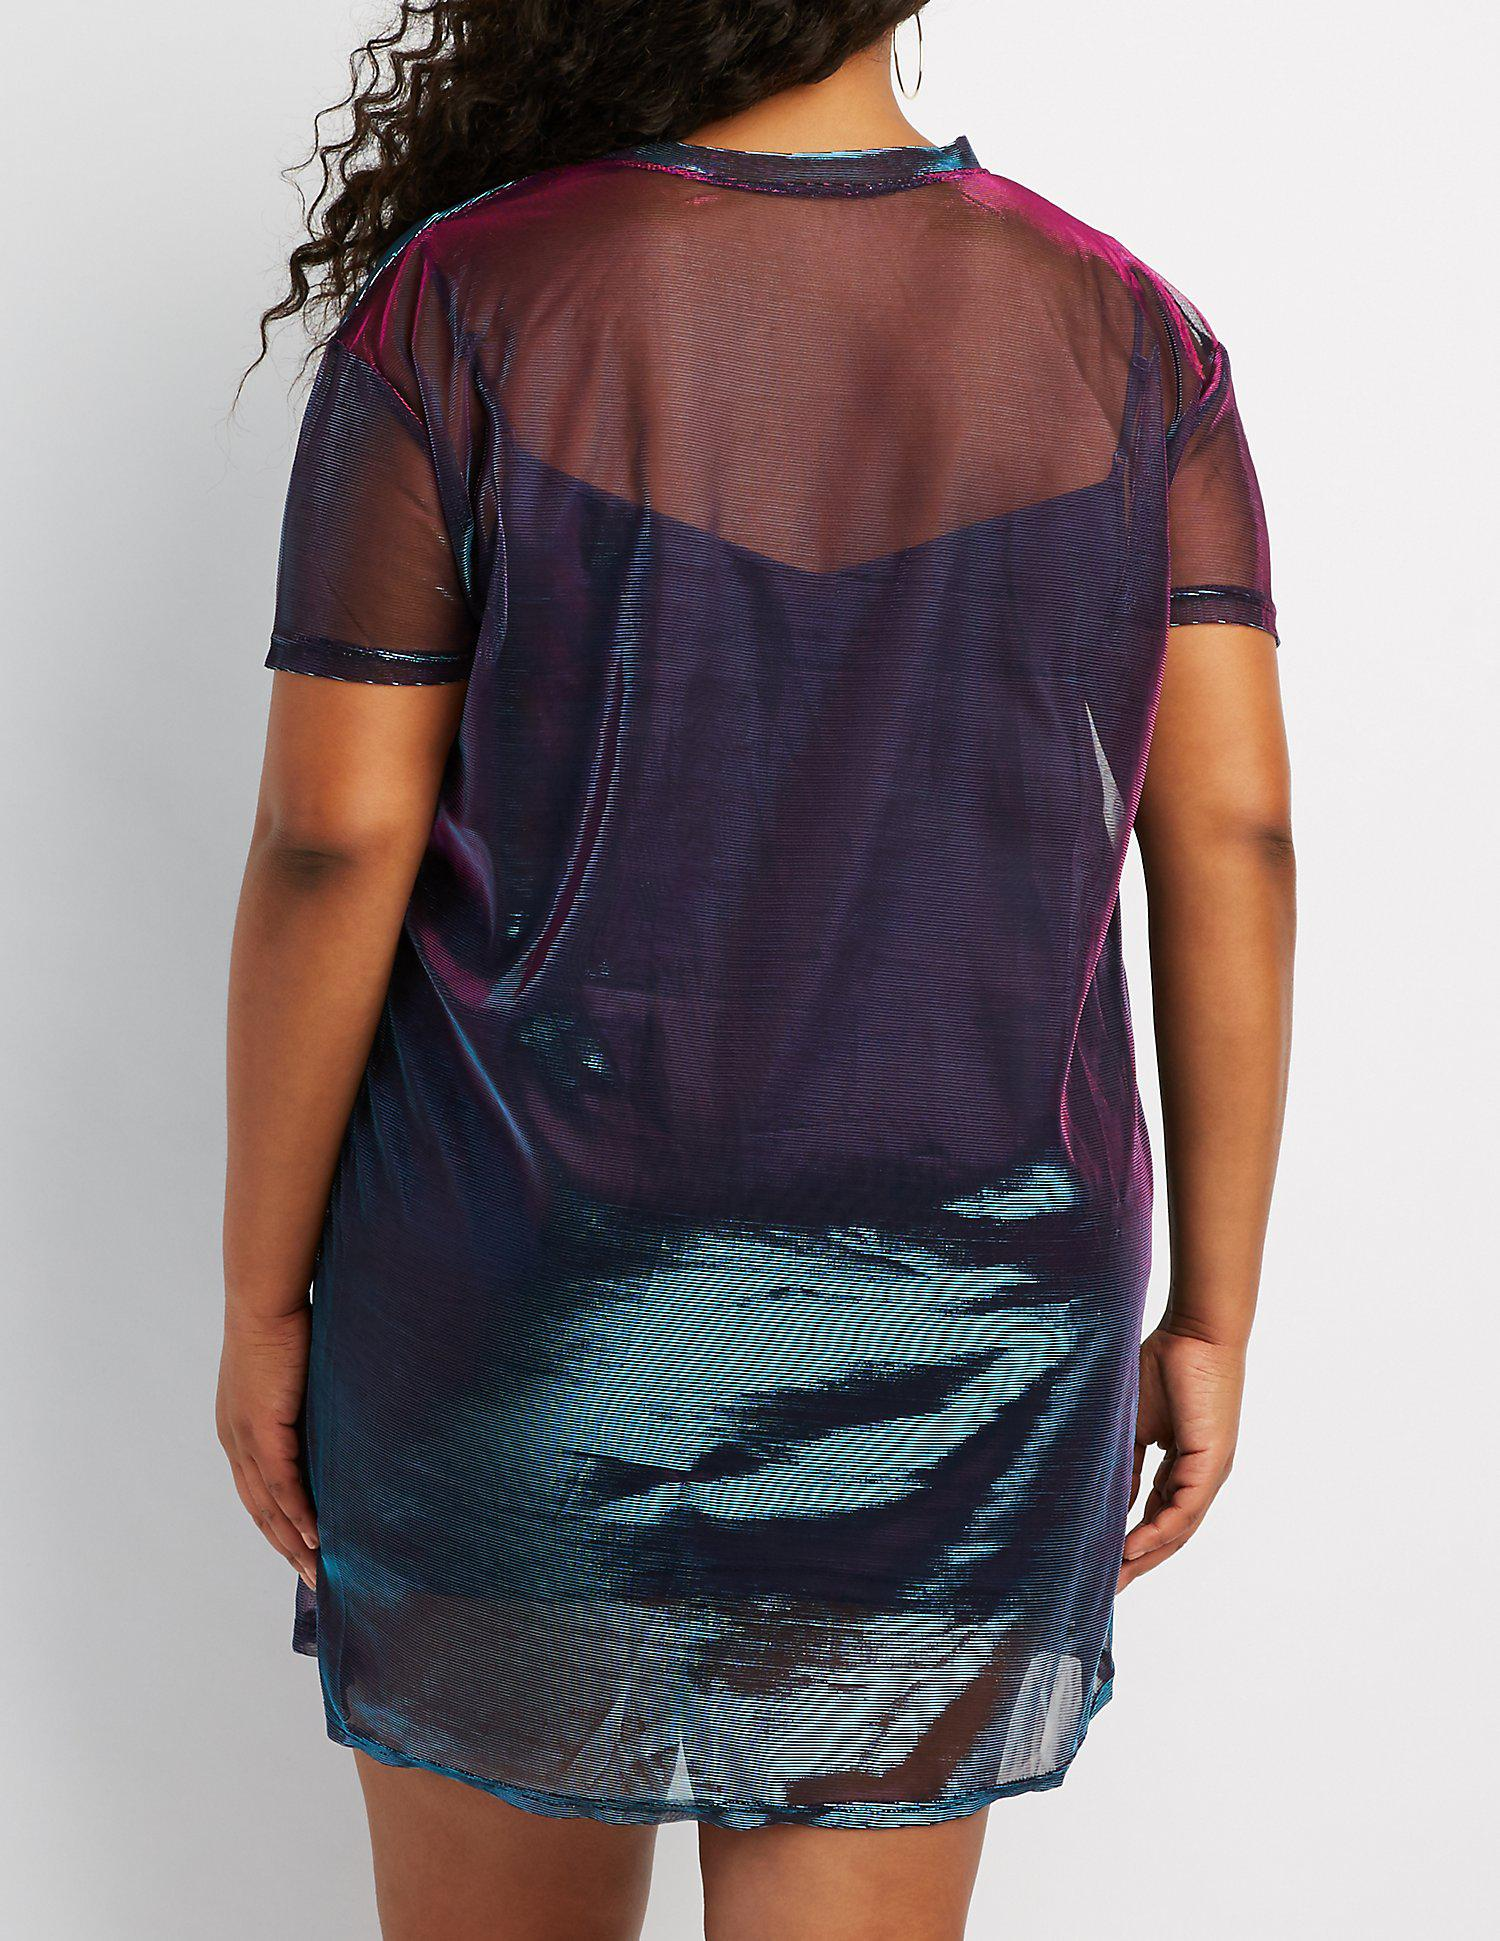 b915d1cfd9c Lyst - Charlotte Russe Plus Size Holographic T-shirt Dress in Blue